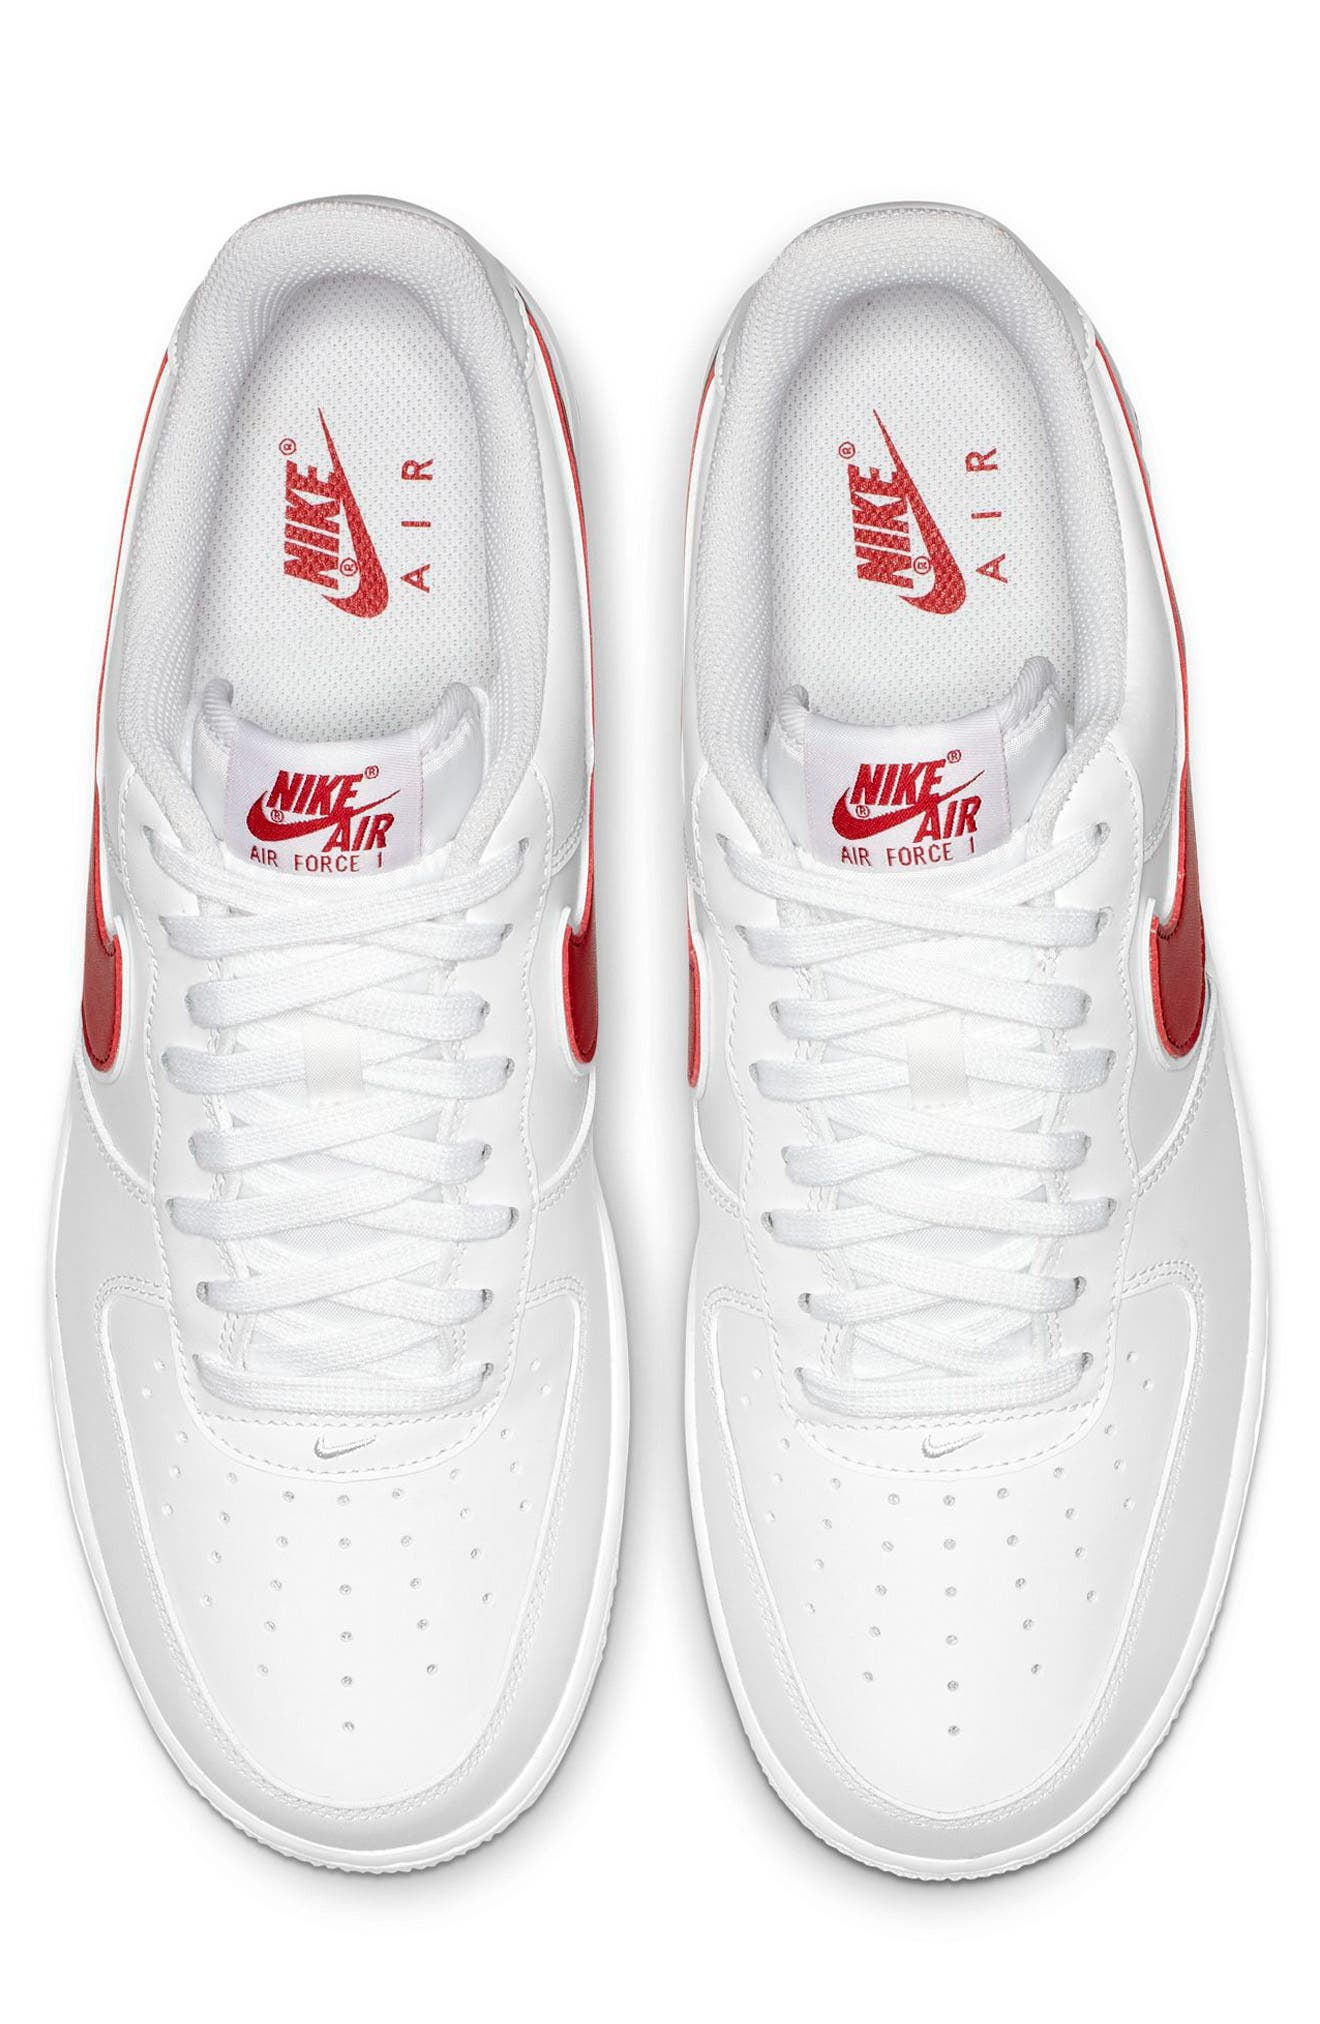 NIKE, Air Force 1 '07 3 Sneaker, Alternate thumbnail 3, color, WHITE/ GYM RED